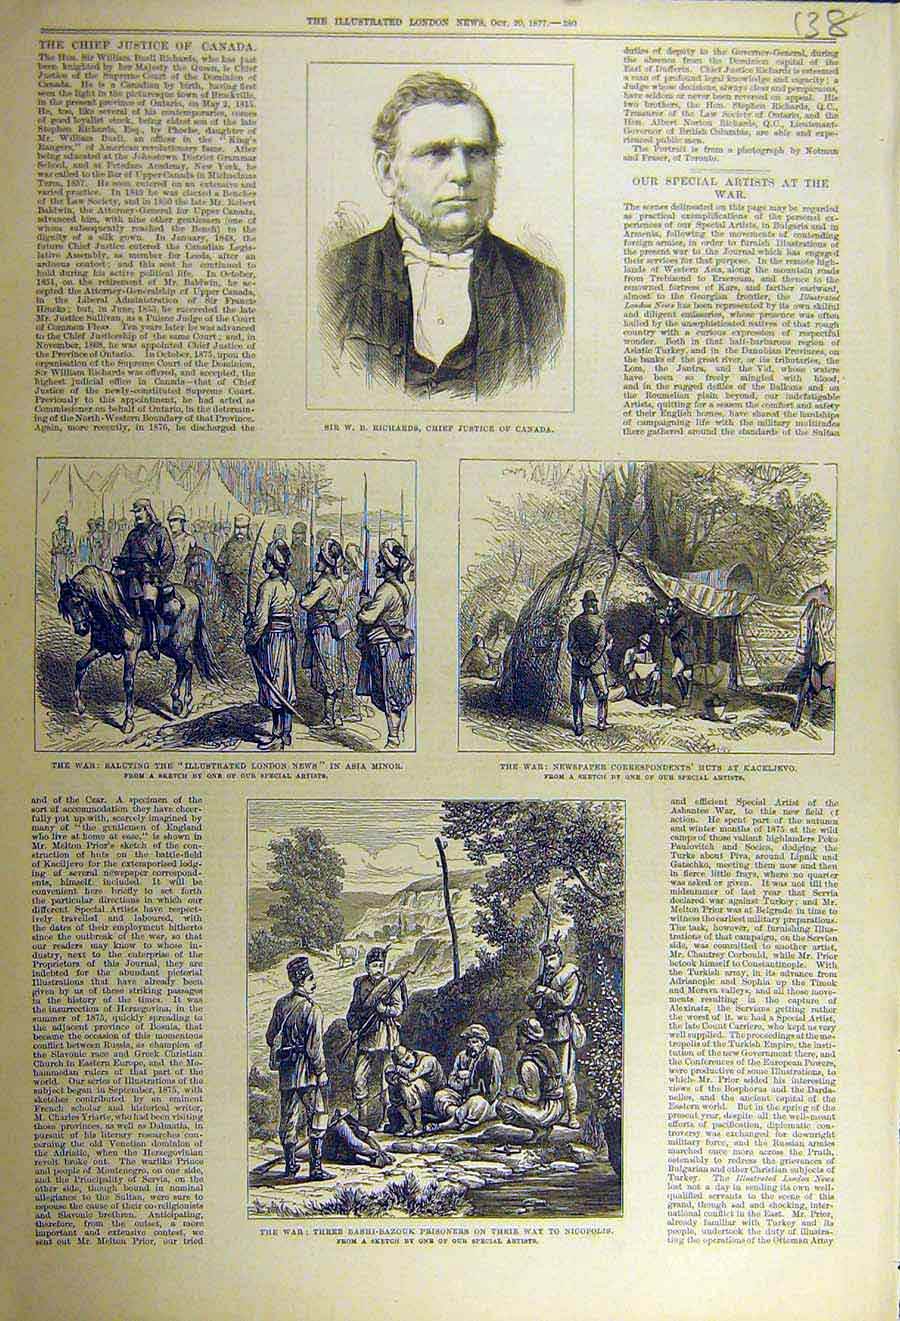 Print 1877 Richards Justice Canada War Russian-Turksih Troops 38Ccc1 Old Original